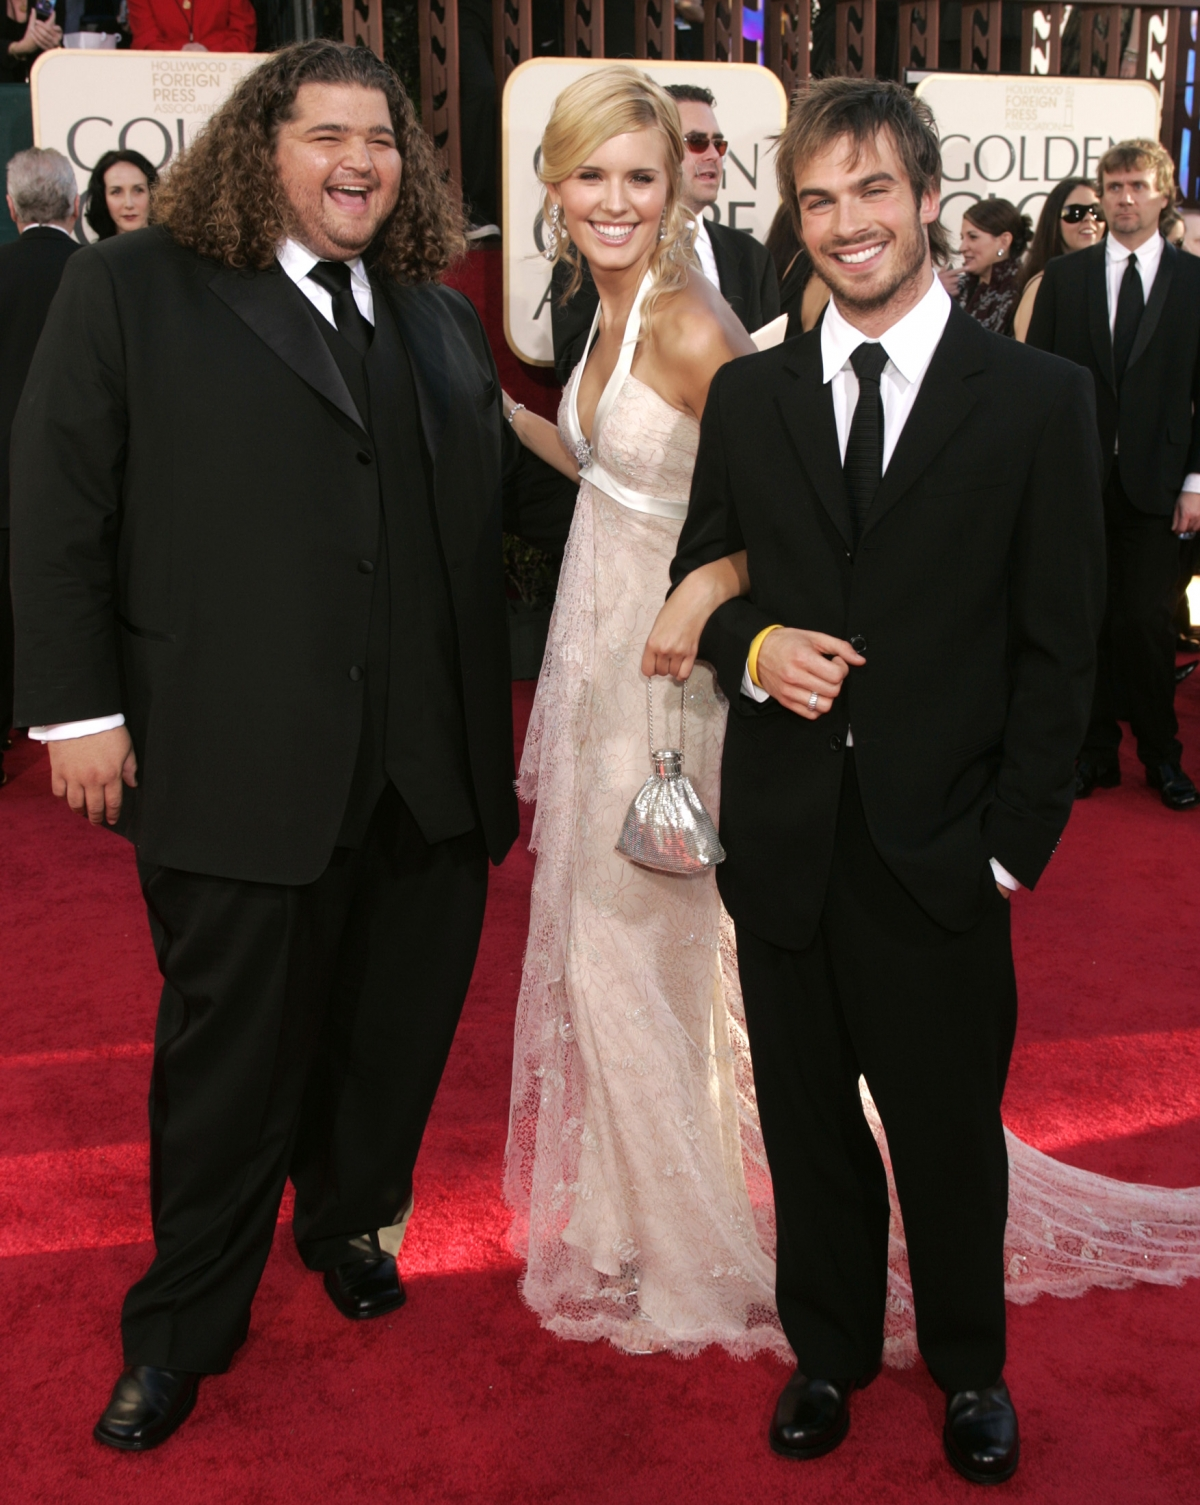 The cast of the television series Lost, Jorge Garcia, Maggie Grace and Ian Somerhalder (L-R) at the 62nd annual Golden Globe Awards in Beverly Hills, California in 2005.